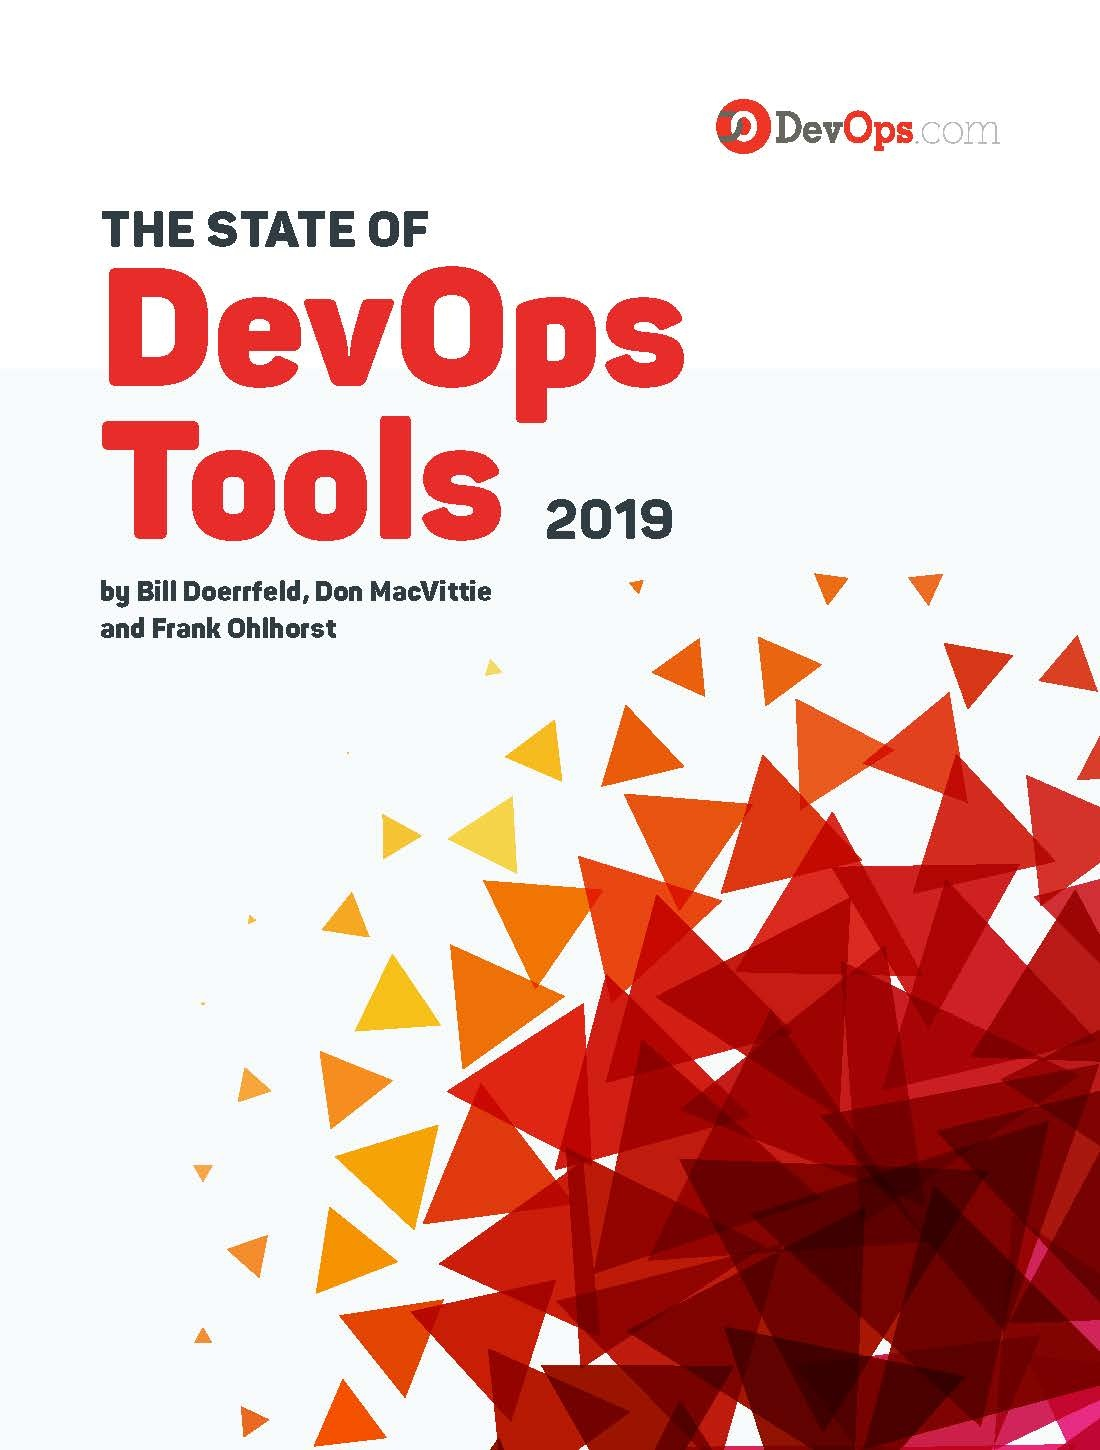 The State of DevOps Tools 2019